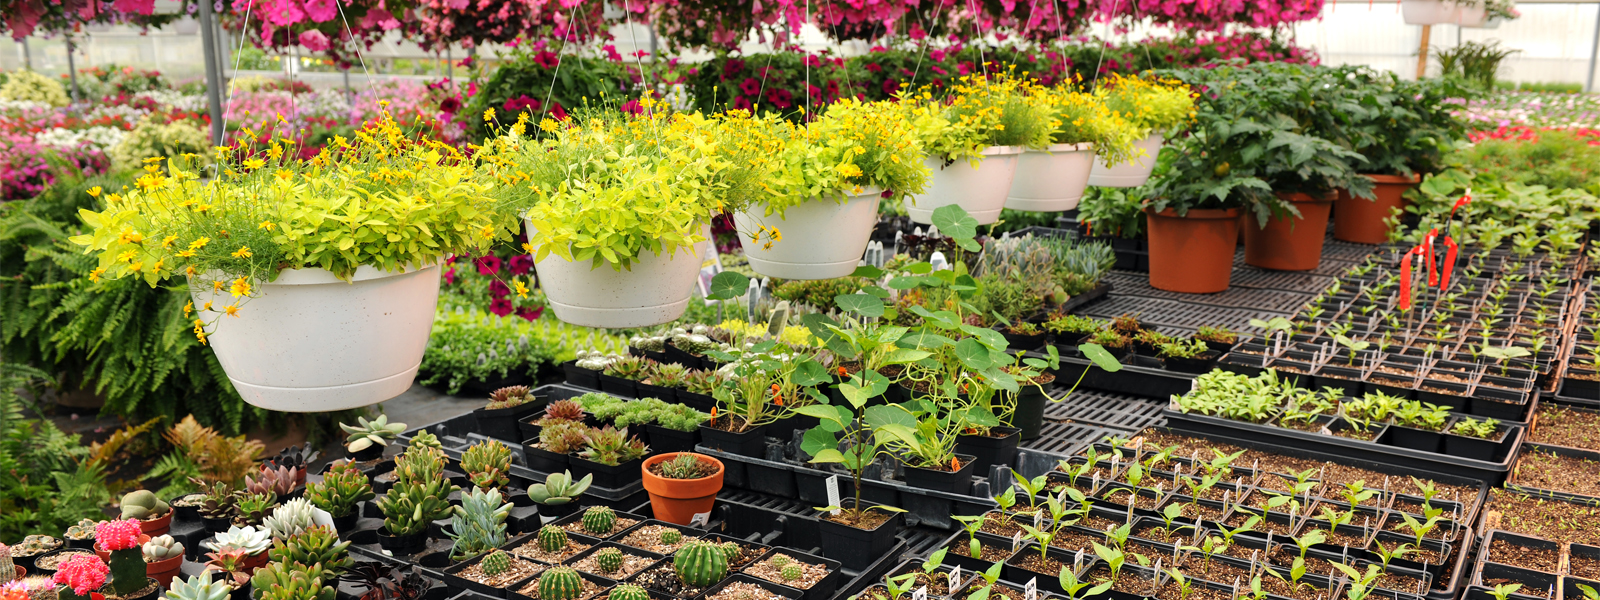 Best Plant Nursery Near Me Biggest Plant Nursery At Your